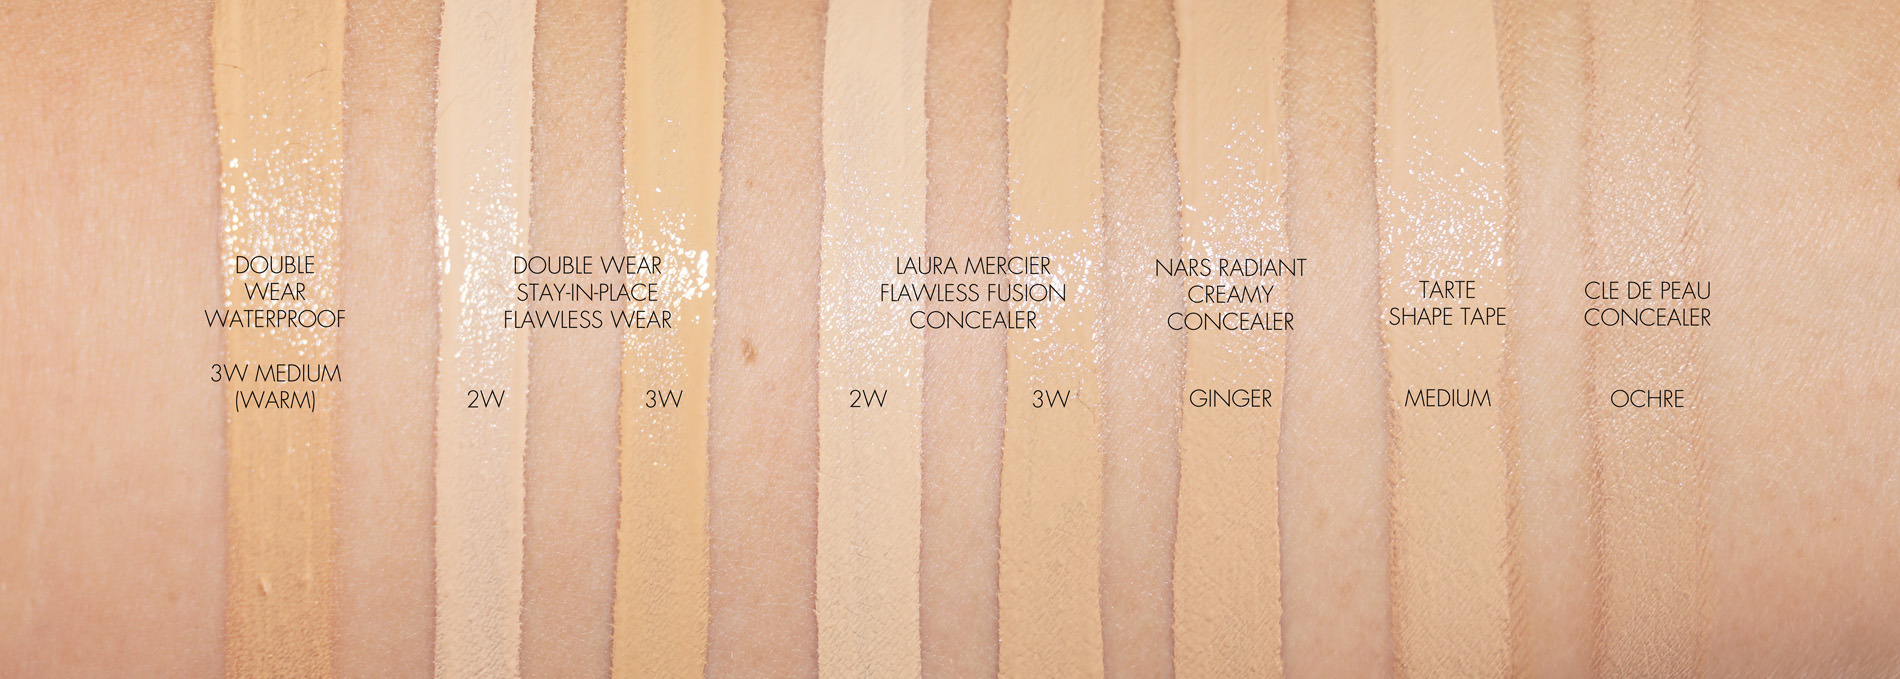 Estee Lauder Double Wear Foundation And Concealer Roundup Review